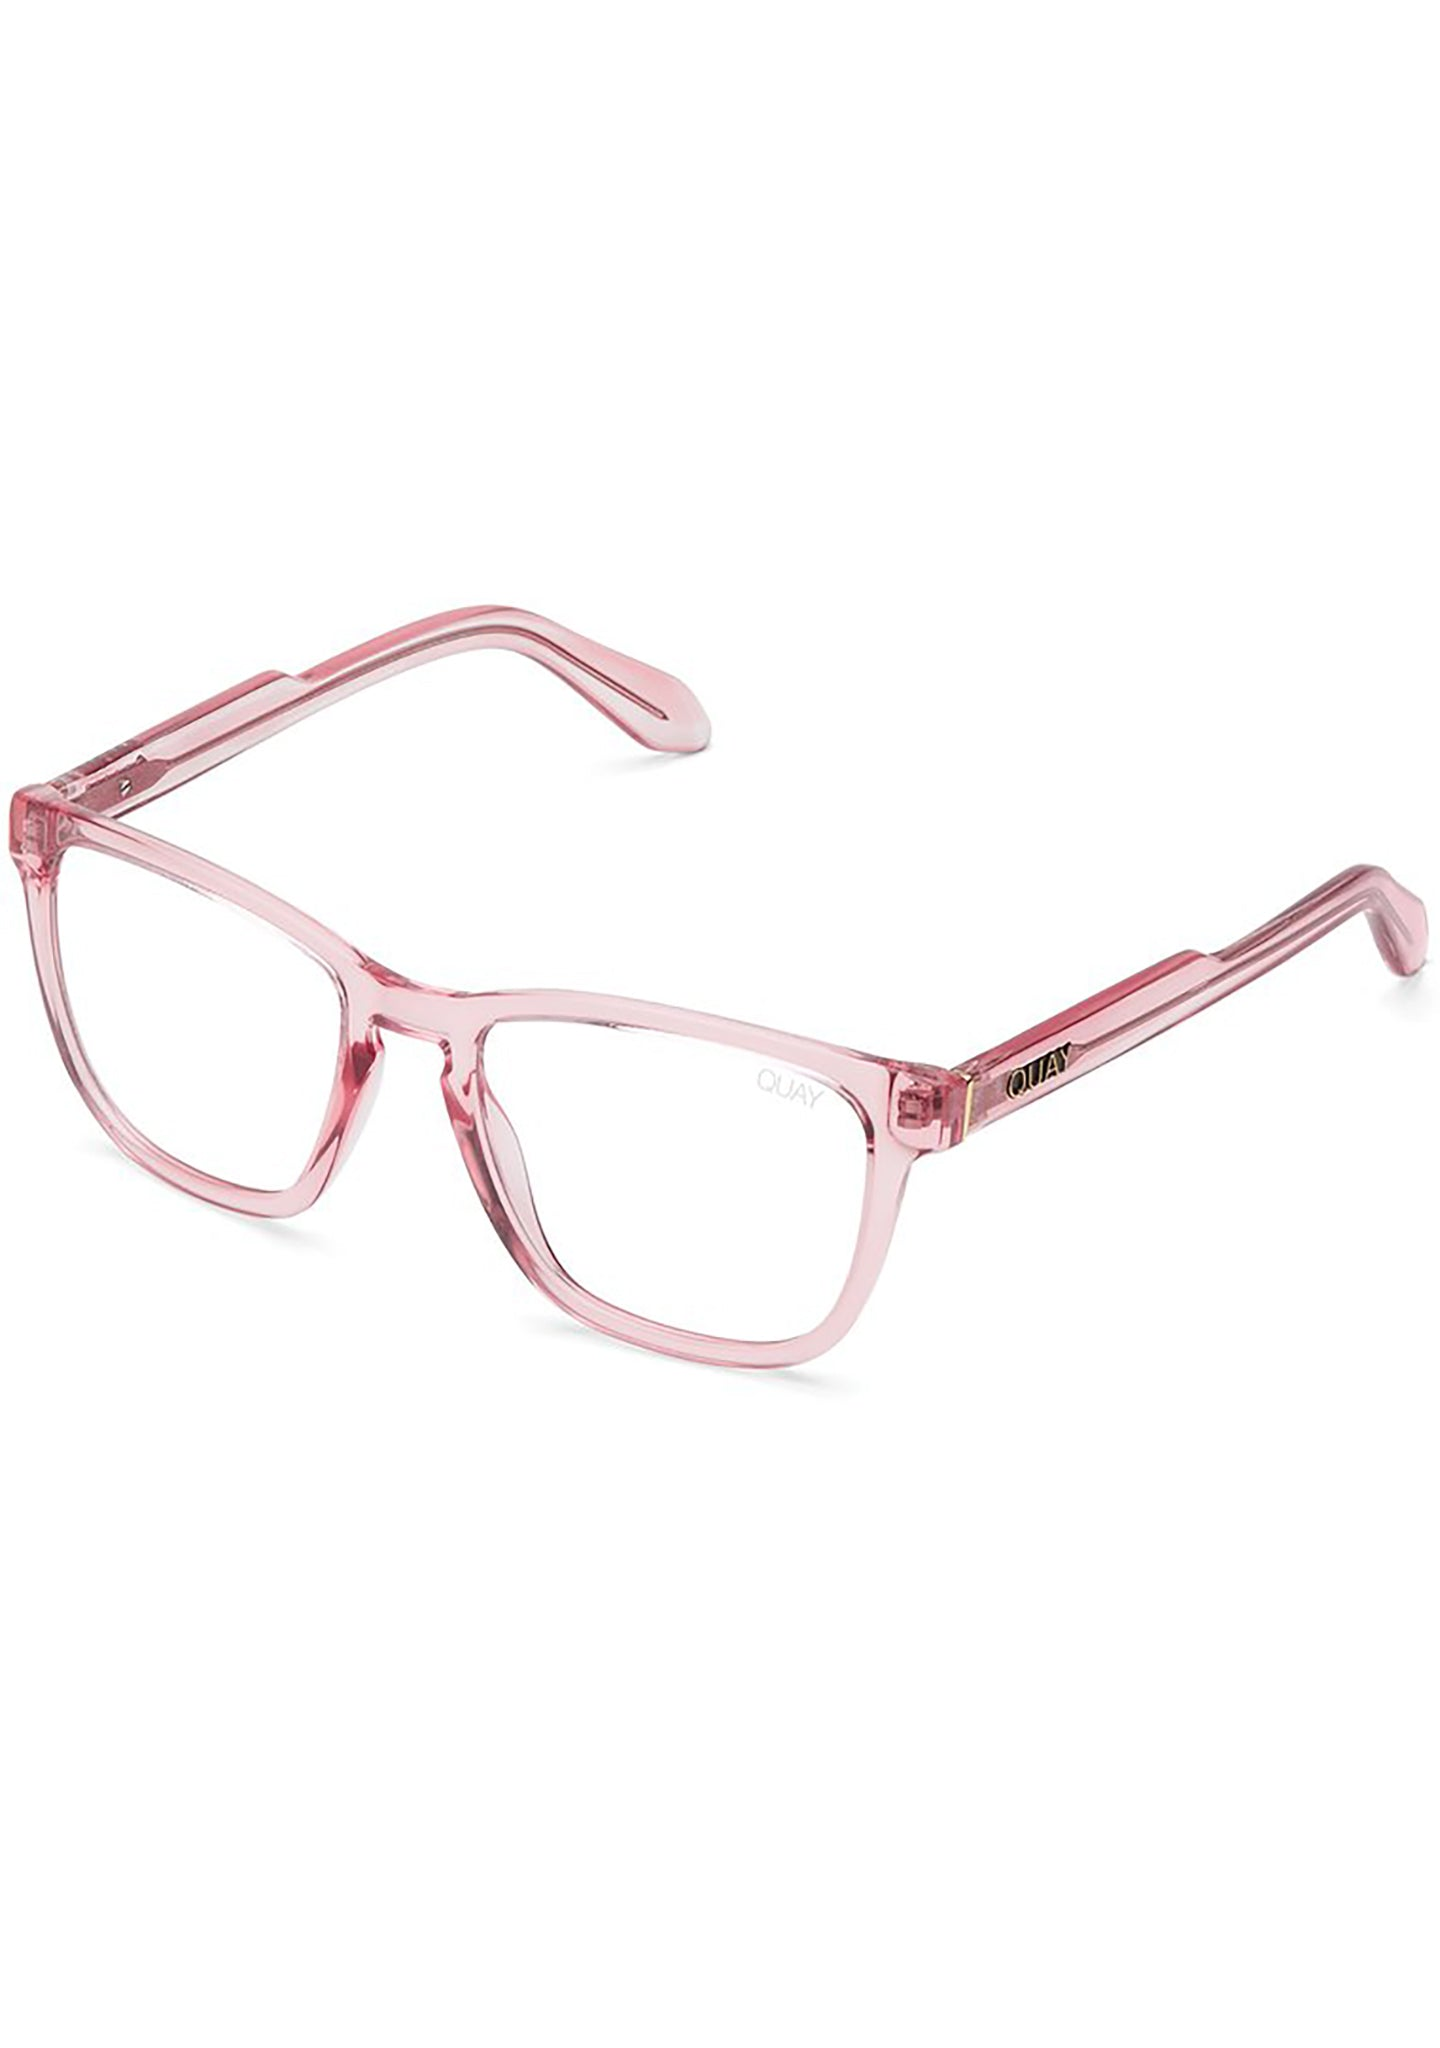 74c54359b9a Blue Light Hardwire Glasses in Pink